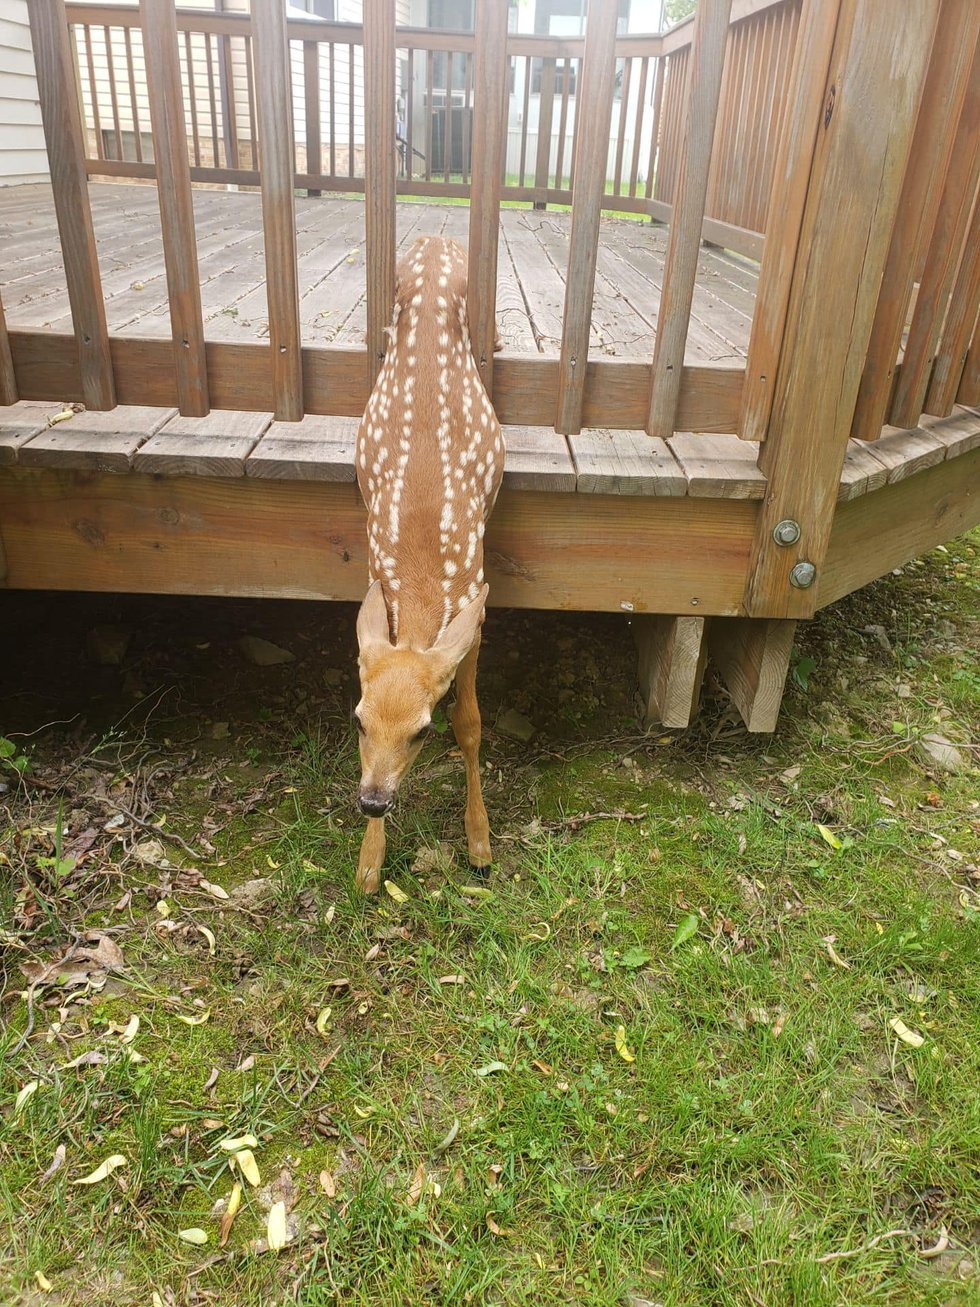 Richmond Heights officer rescues fawn stuck in fence